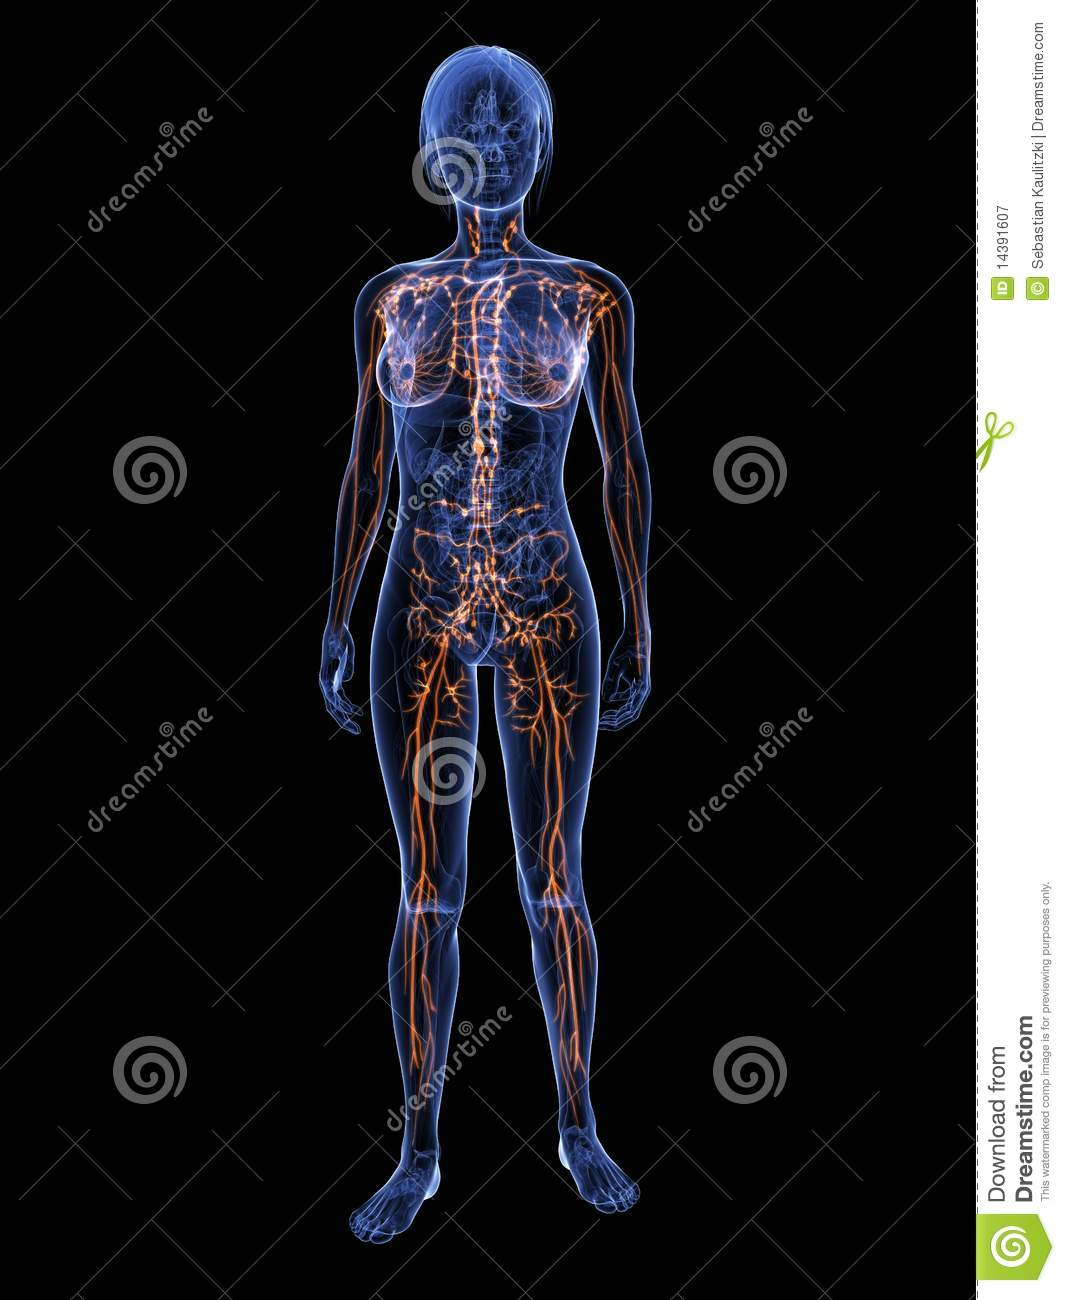 Female lymphatic system stock illustration. Illustration of swollen ...